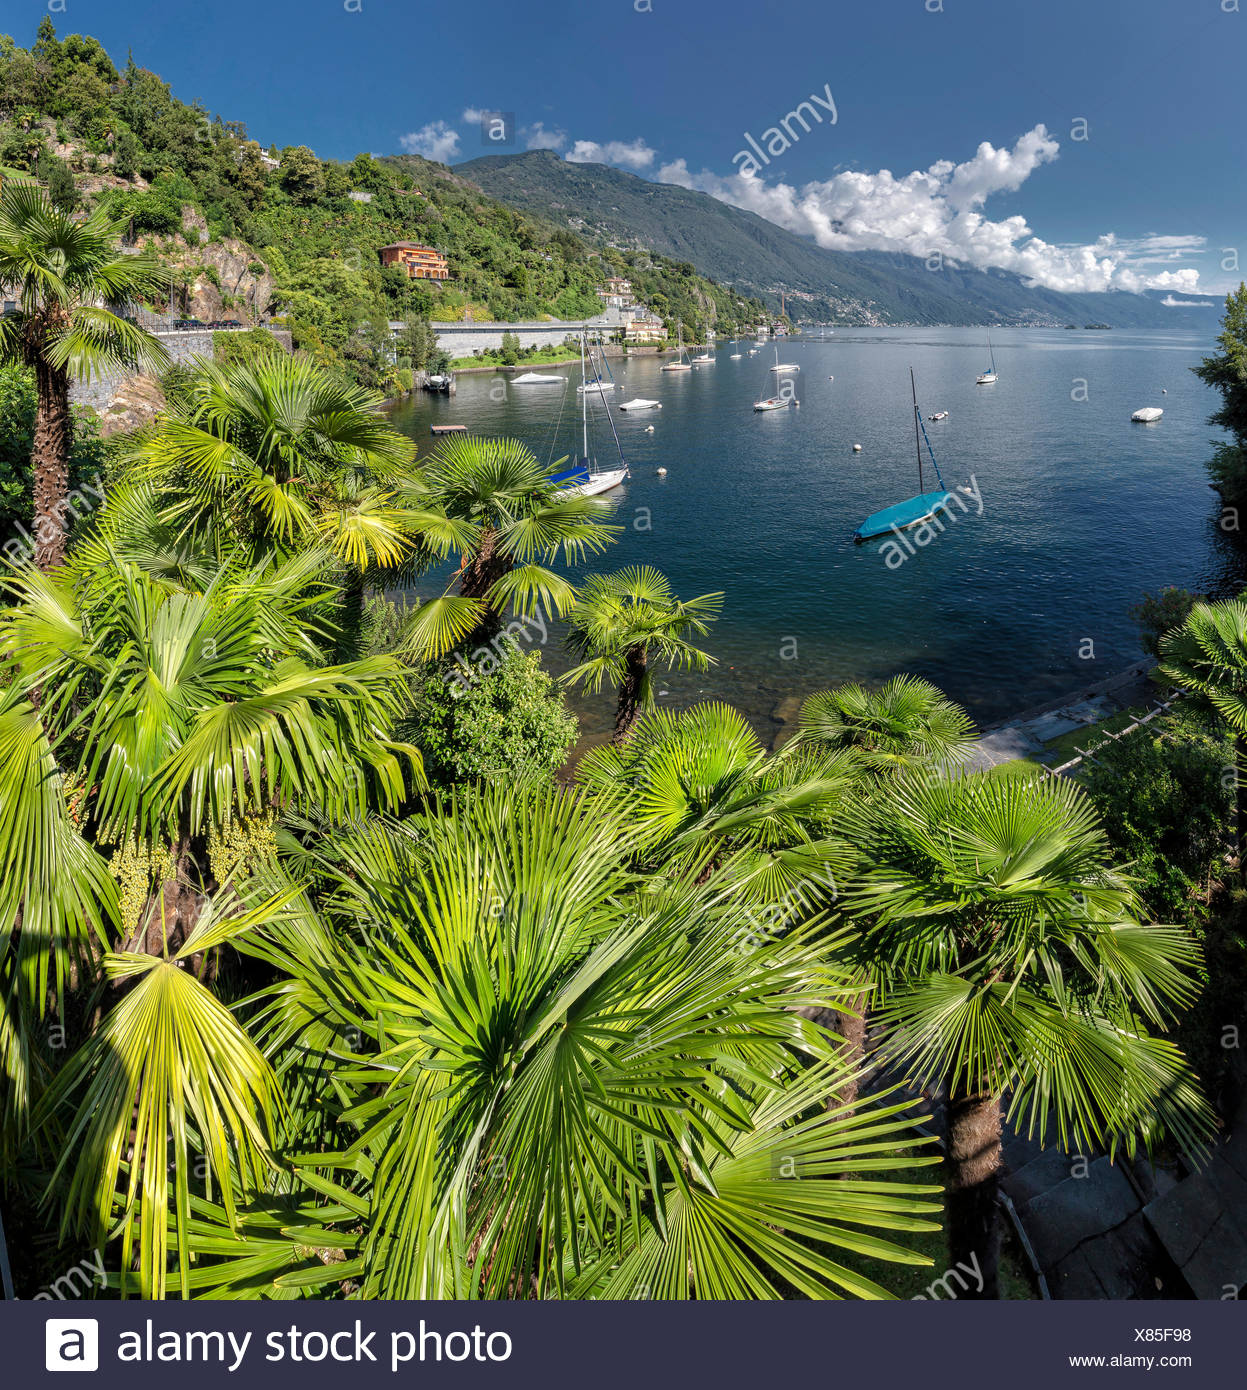 Switzerland, Europe, Ascona, Ticino, Secluded bay, palm trees, Lake Maggiore, landscape, water, trees, summer, mountains, lake, - Stock Image